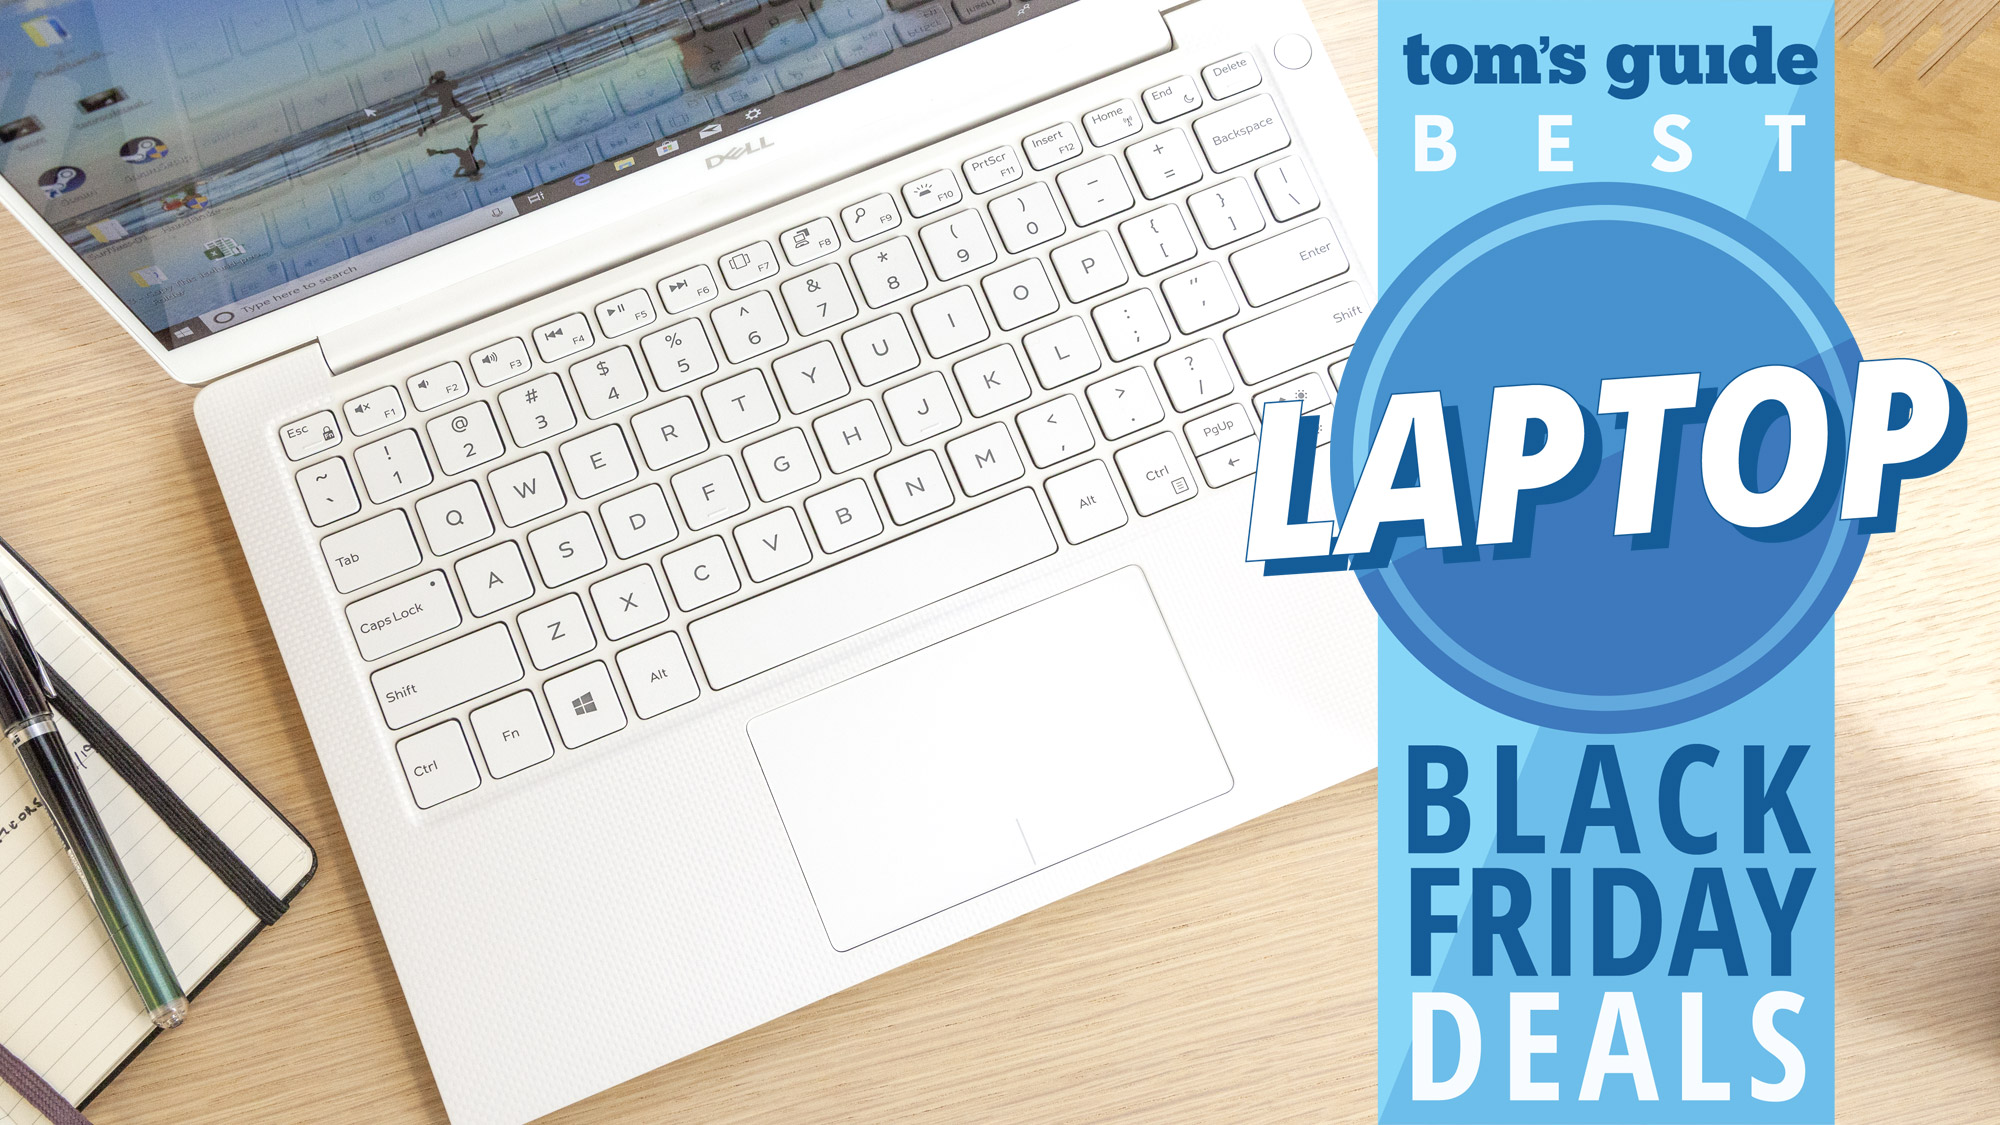 Best Laptop Deals Black Friday 2020.The Best Laptop Deals For Black Friday Weekend 2019 Tom S